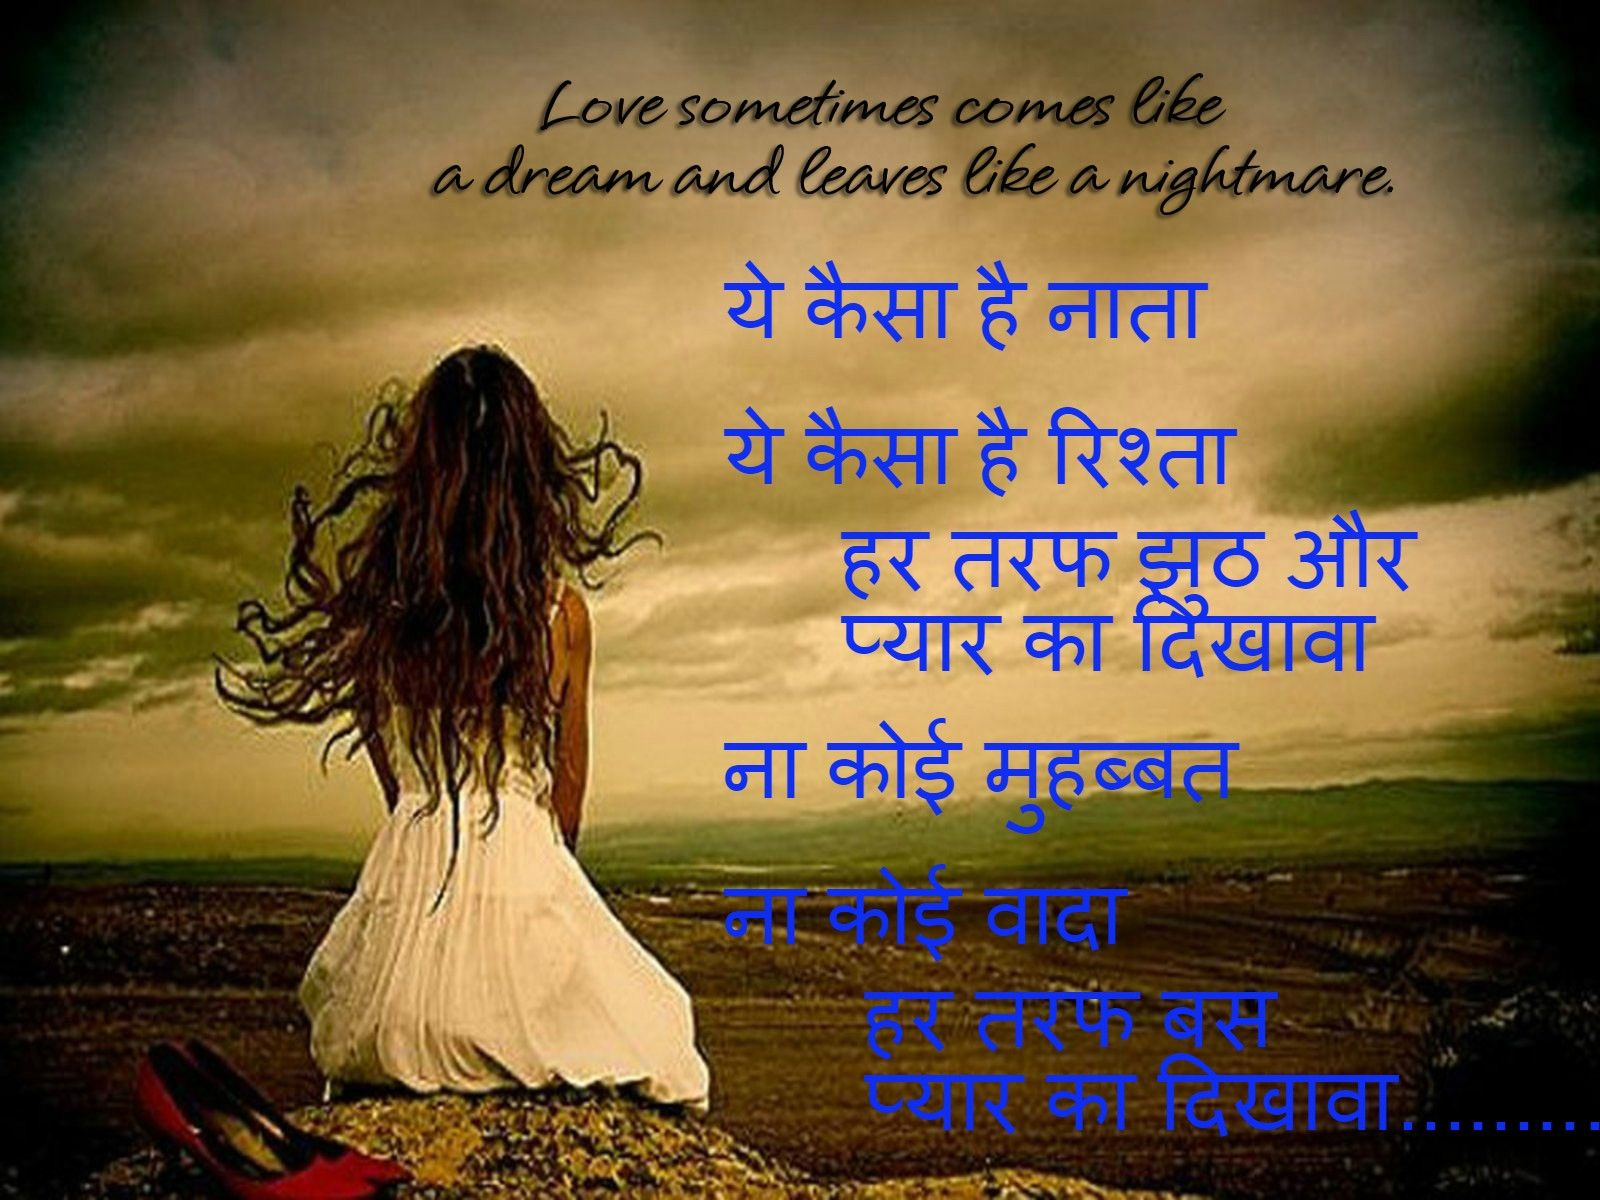 Wallpaper download love shayri - Images Of Love And Shayari Download Shayari Hi Shayari Love Shayari Image Hindi Hindi Shayari